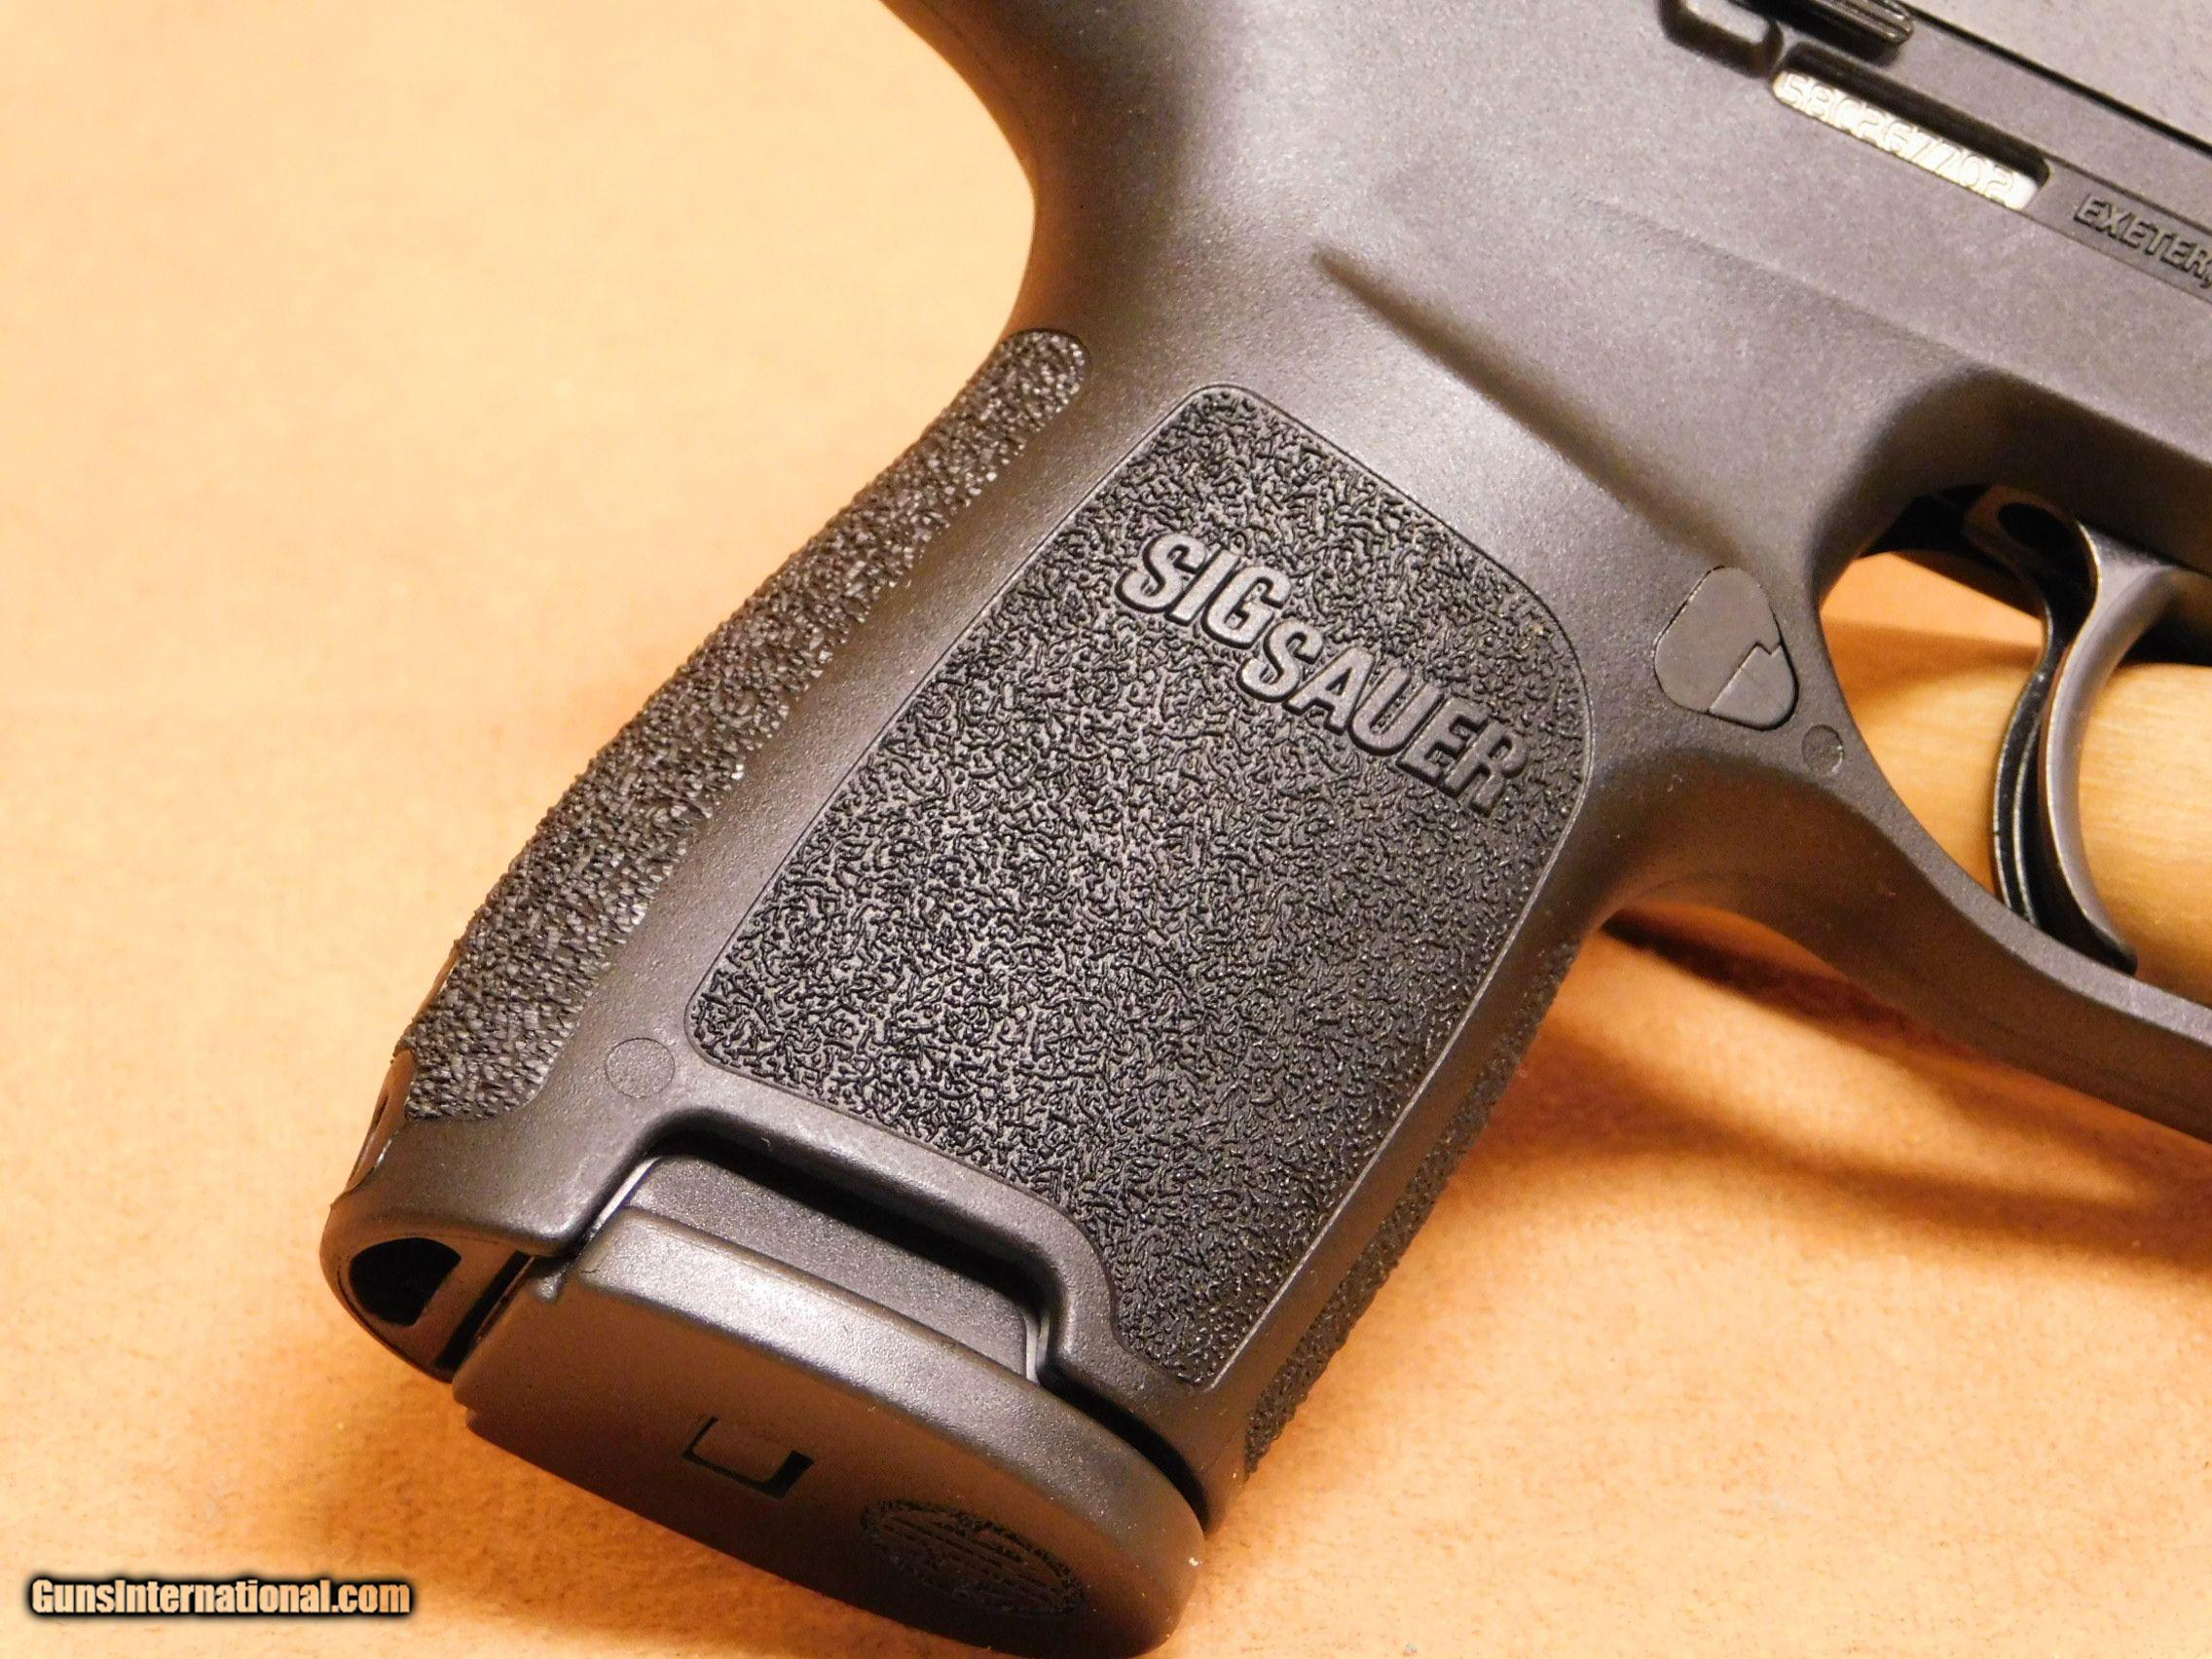 Sig Sauer P320 RX Compact w/ ROMEO1 Red Dot